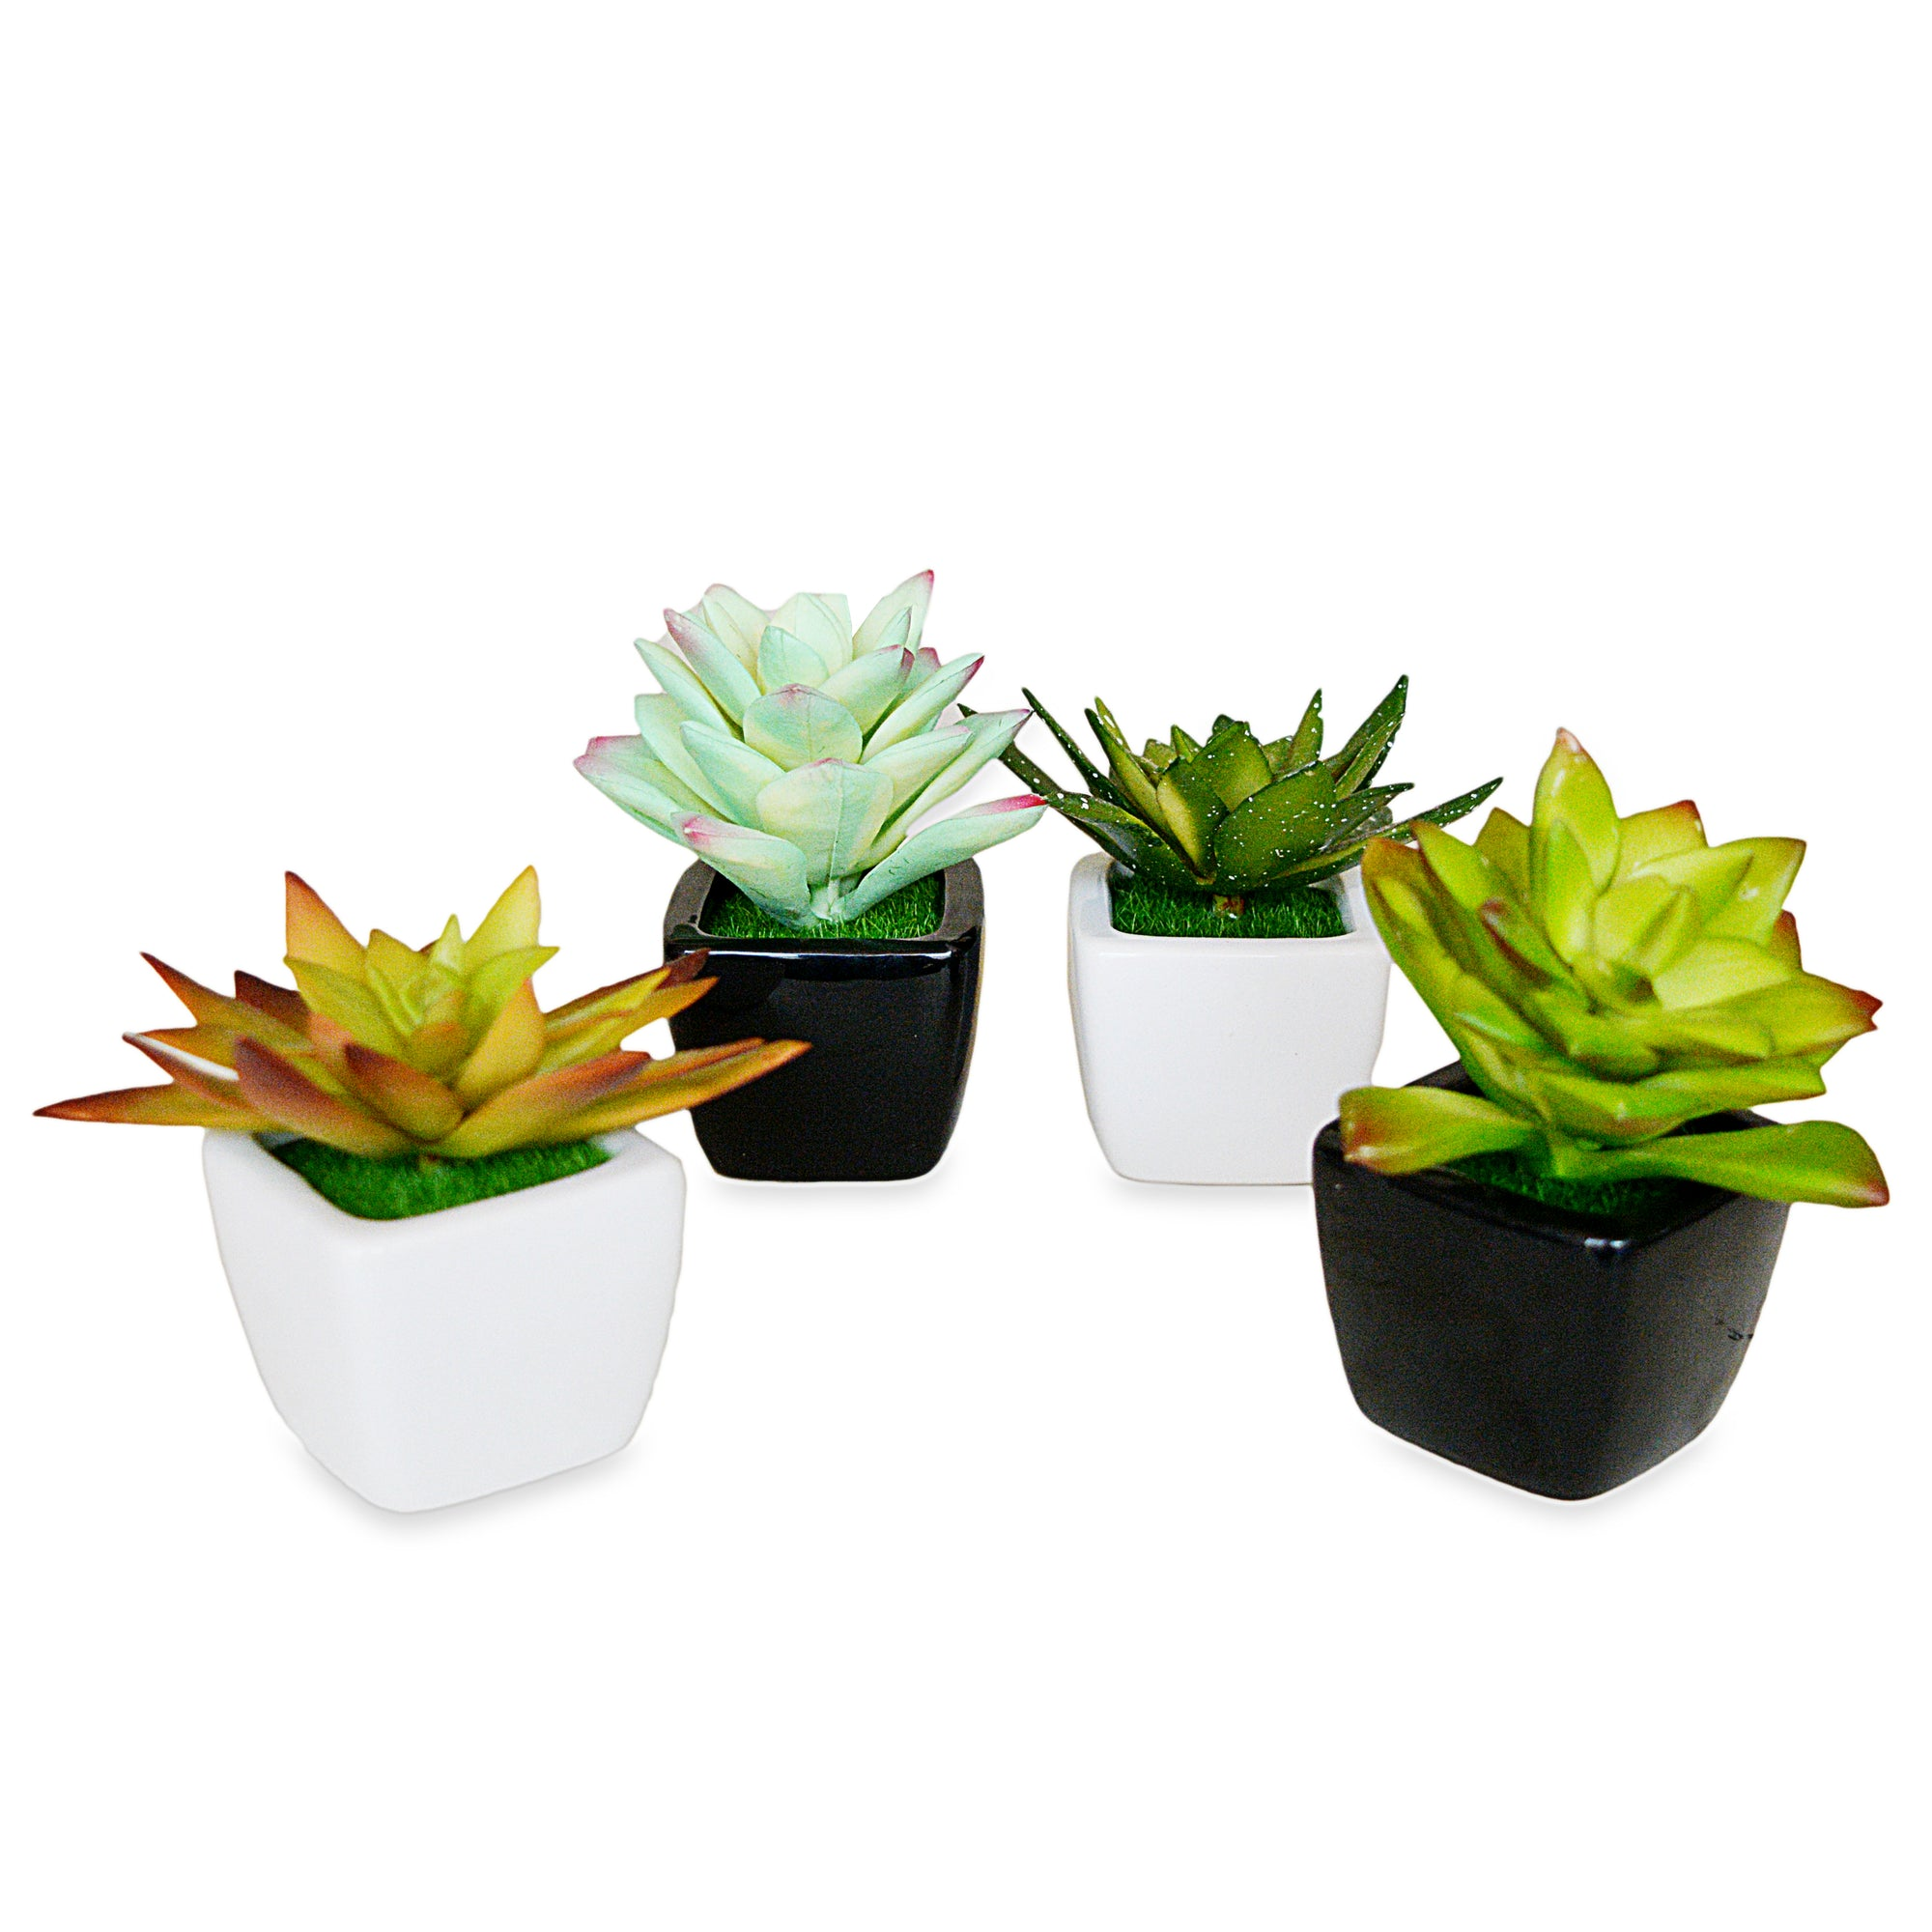 Decorative Small Pot Planter(Set Of 2)